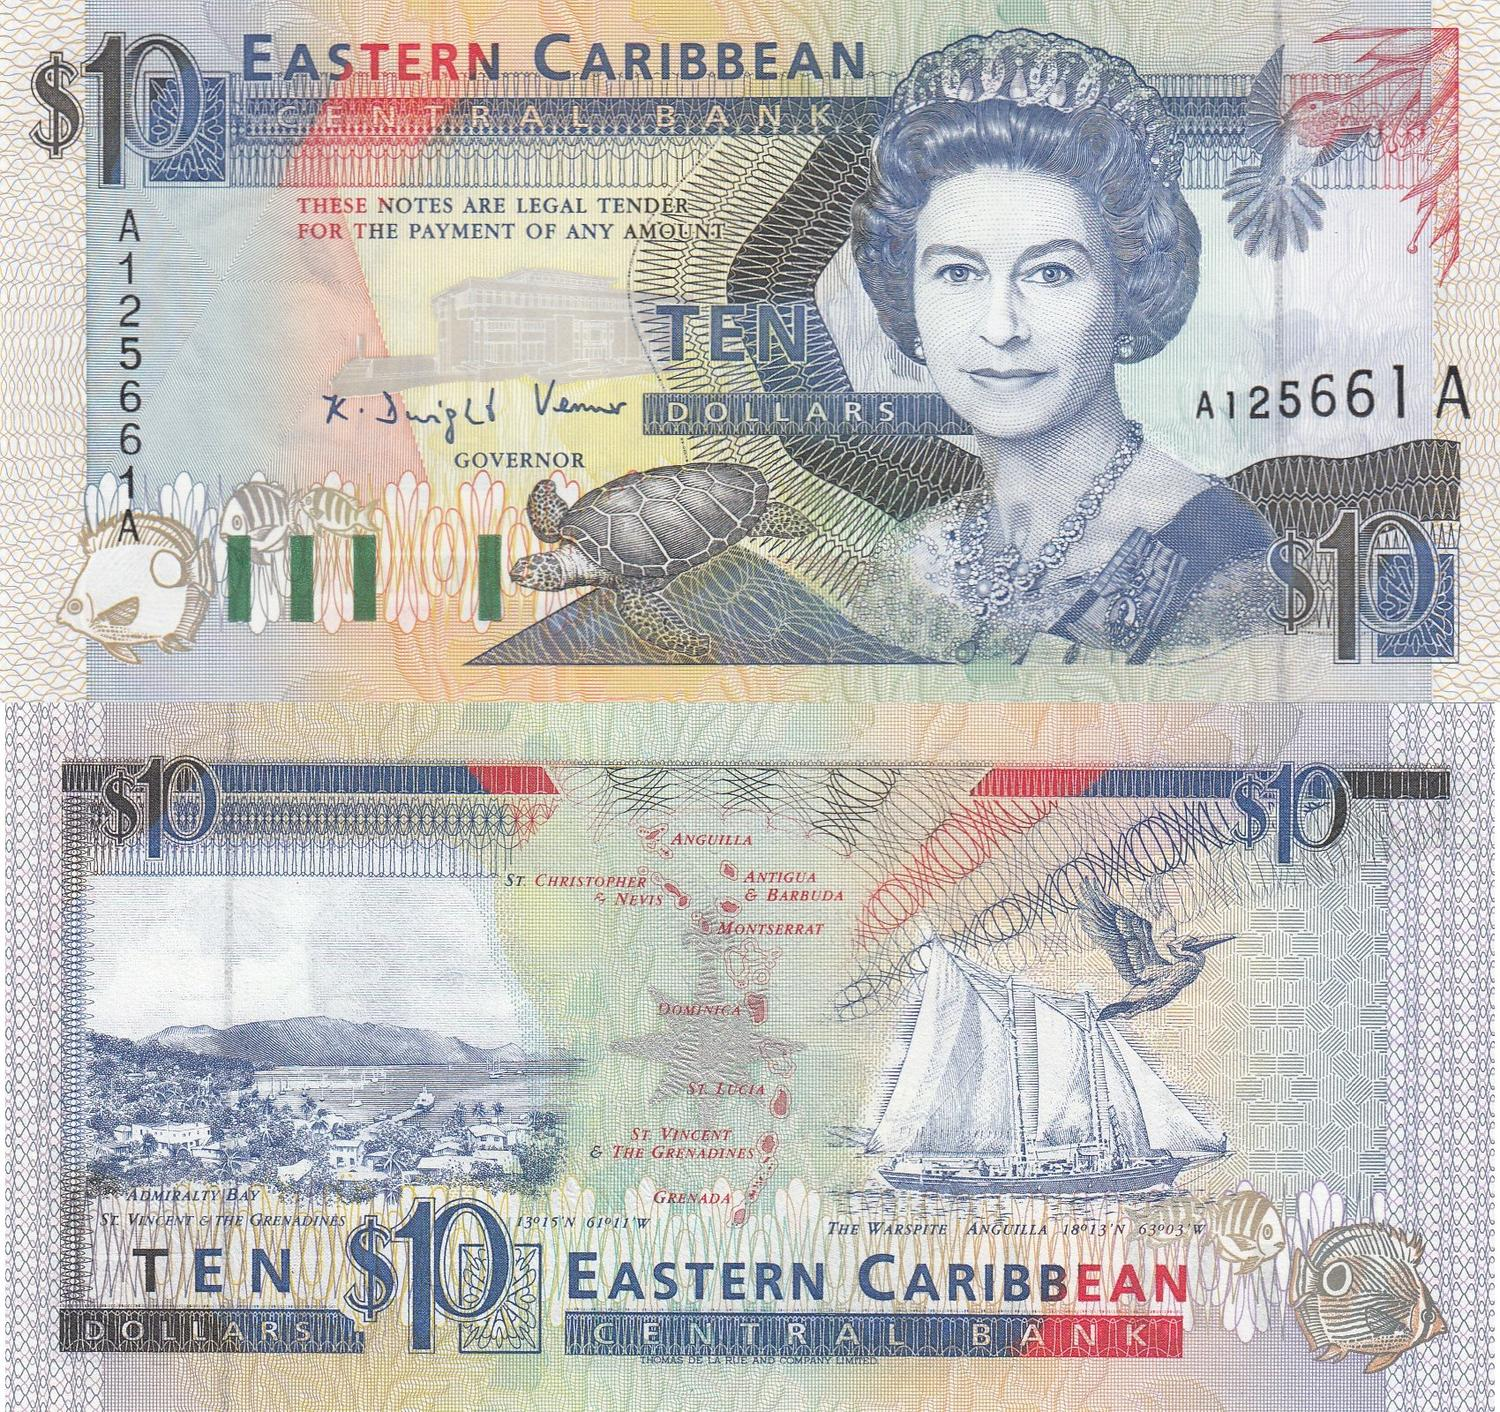 Unc P East Caribbean States 50 Dollars 2000 40 A